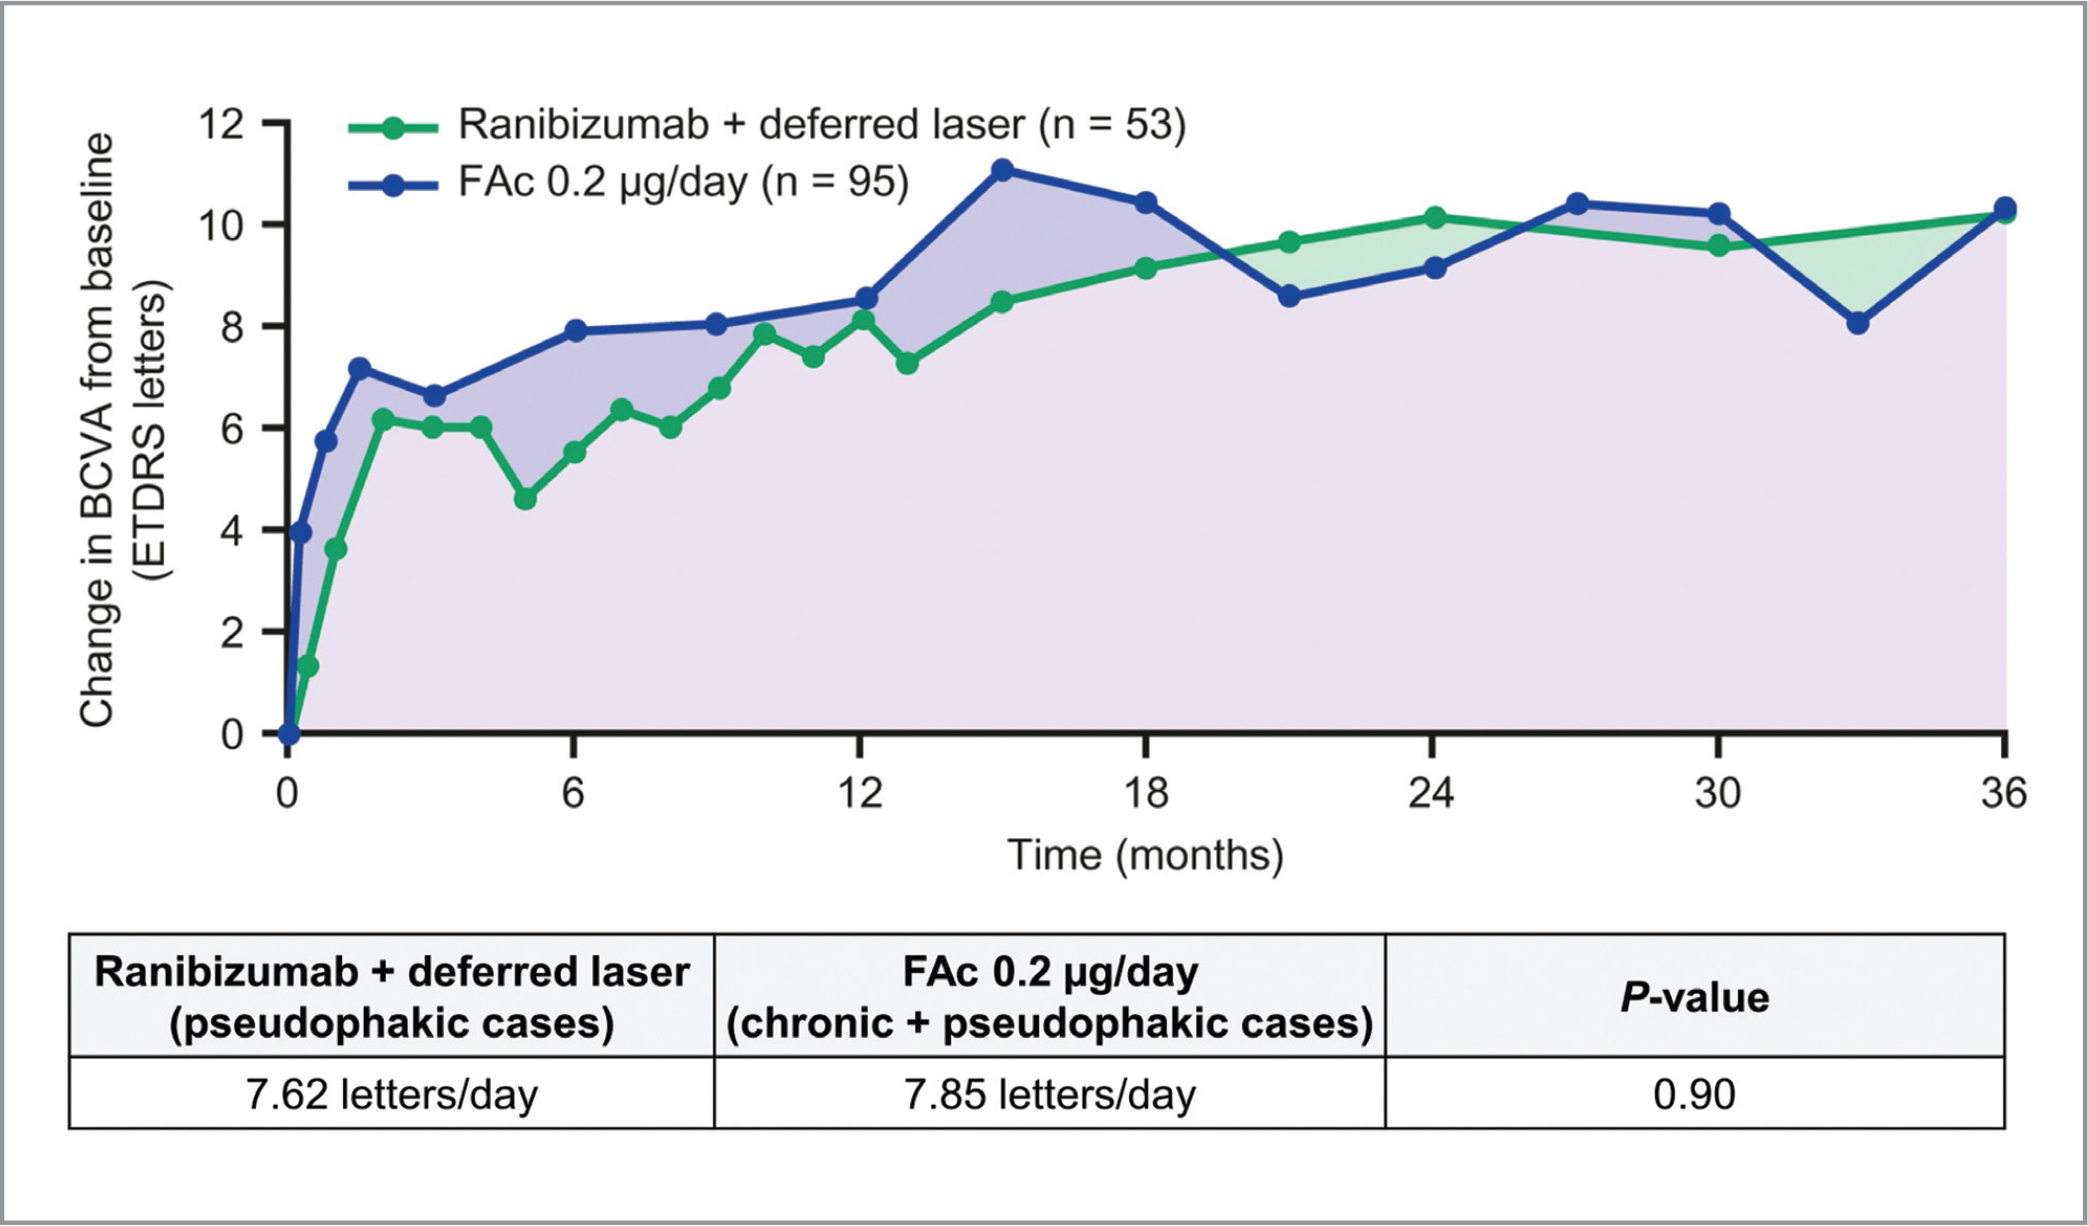 Summary of BCVA letter score and illustrative comparison of AUC from mean BCVA scores for FAc 0.2 μg/day (pseudophakic eyes with chronic diabetic macular edema) and ranibizumab plus deferred laser (pseudophakic cases). AUC = area under the curve; BCVA = best-corrected visual acuity; ETDRS = Early Treatment Diabetic Retinopathy Study; FAc = fluocinolone acetonide